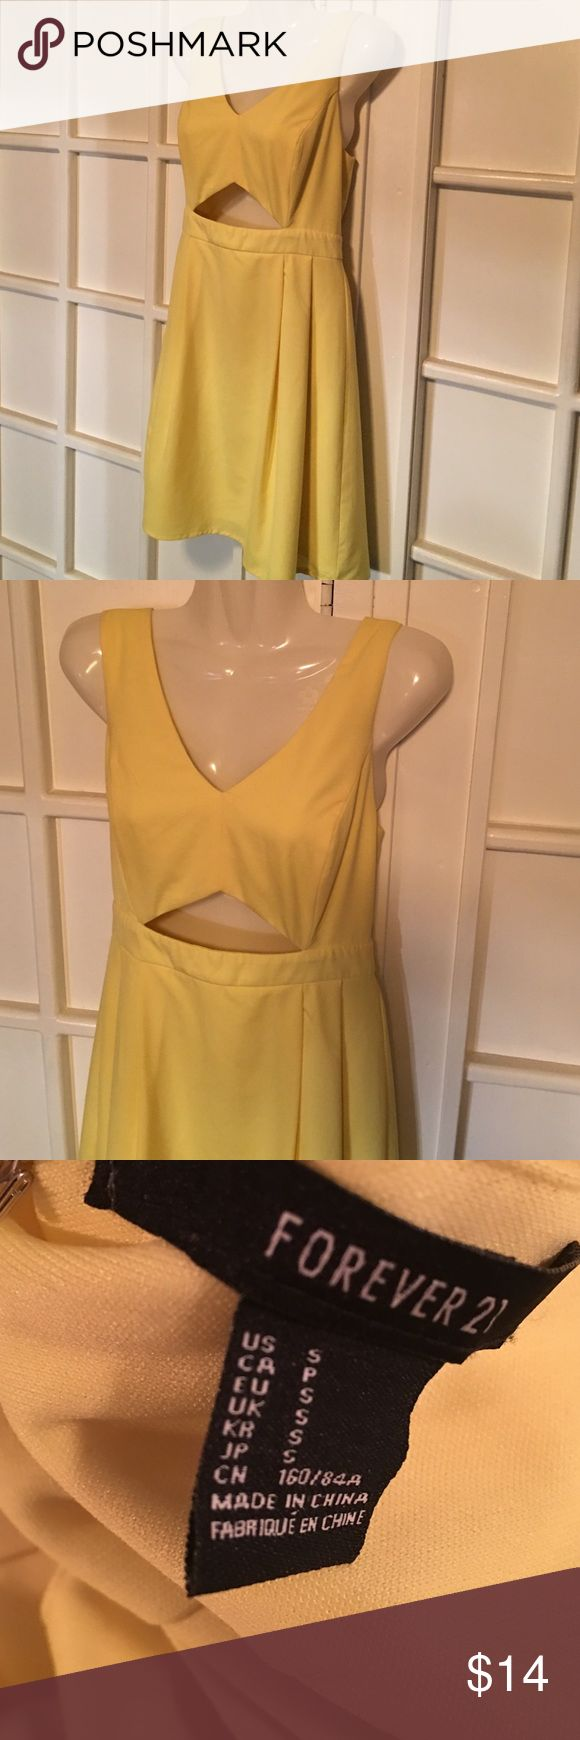 Keyhole DRESS by FOREVER 21 👘 This is adorable and done in a beautiful pale yellow. 🔑 Keyhole front, zippered back. EUC Comes from a smoke free home 🏡 Bundle & save! Forever 21 Dresses